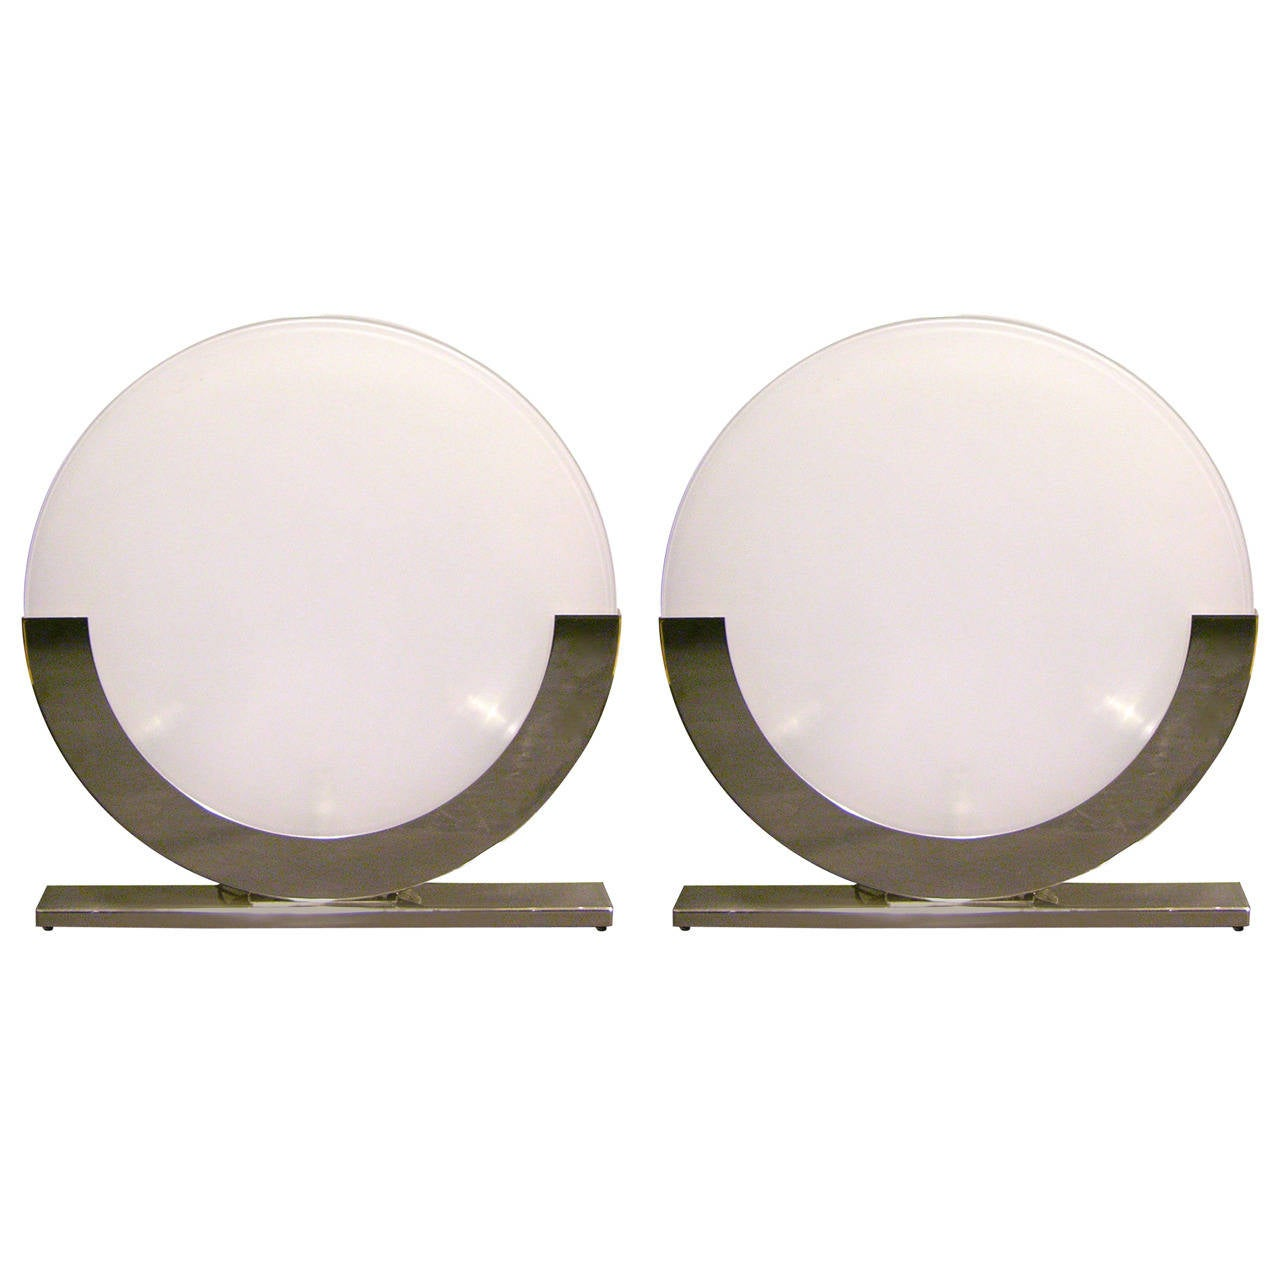 1990 Minimalist Italian Design Pair Of White And Chrome Round Table Lamps 1